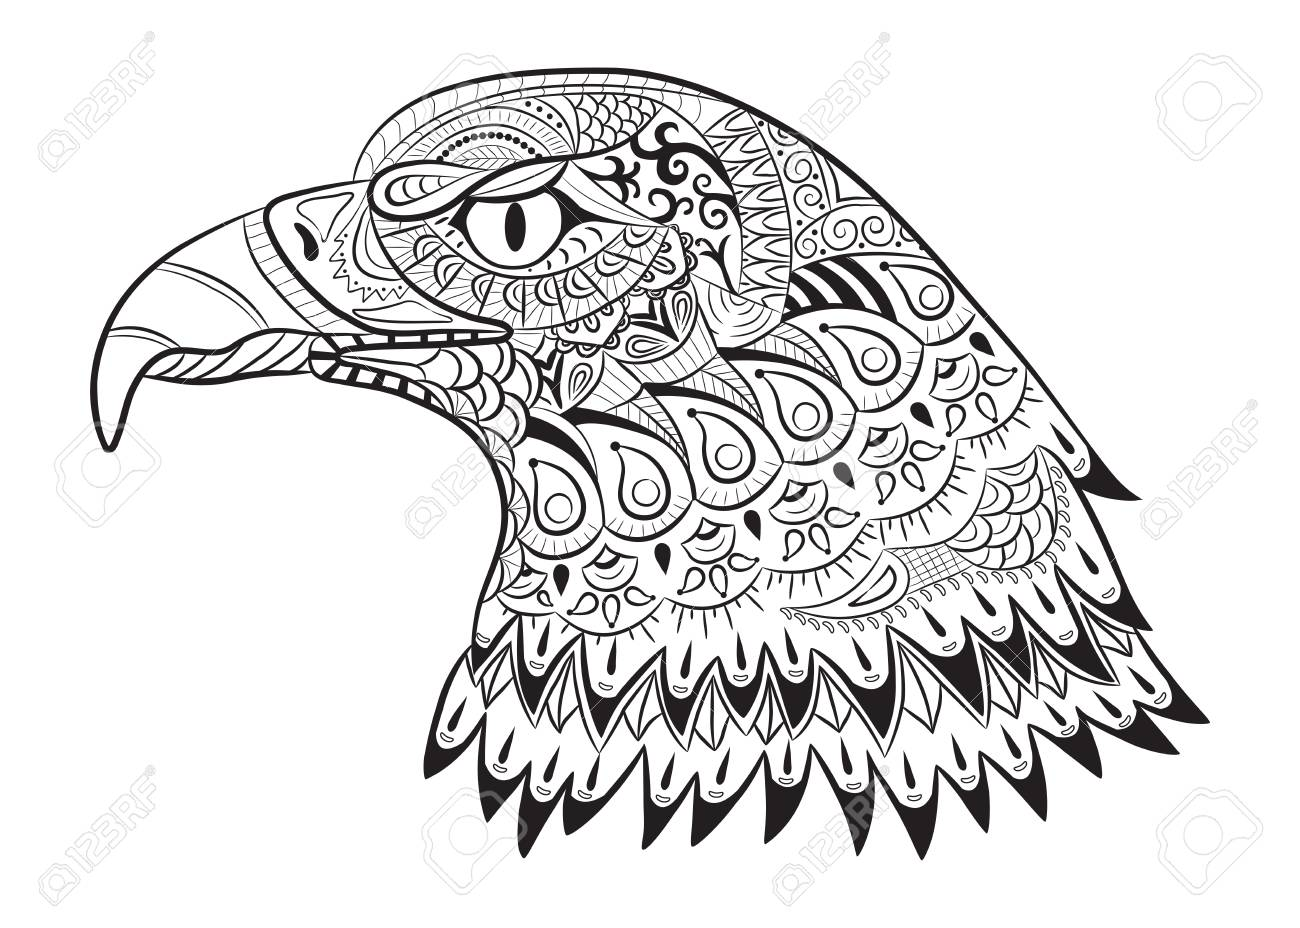 Hand drawn eagle. Doodle for coloring page for adults, t-shirt..